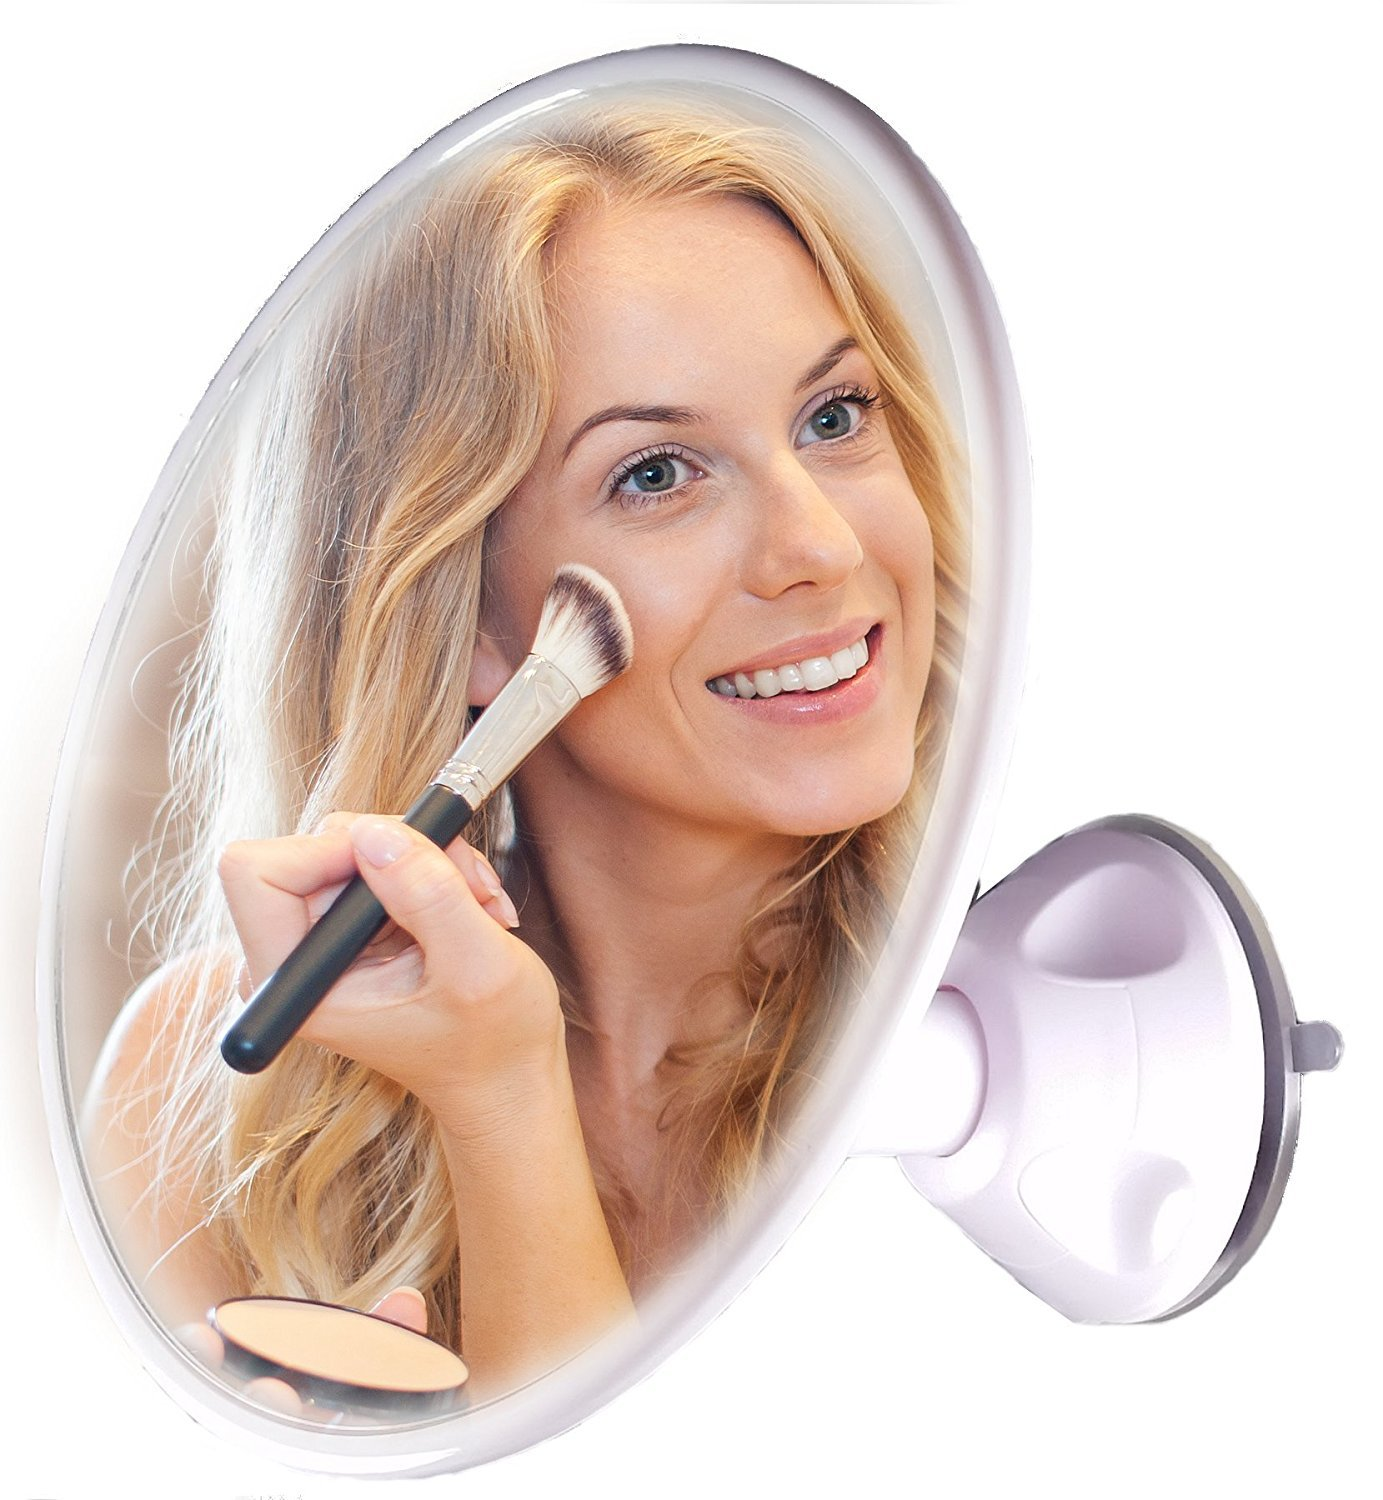 Powerful Magnifying Mirror With Suction Cups. Perfect Vanity Mirror For Makeup and Bathroom Vanity Mirrors. Strong Suction Mirror, Vanity Makeup Mirror, Perfect For Mom